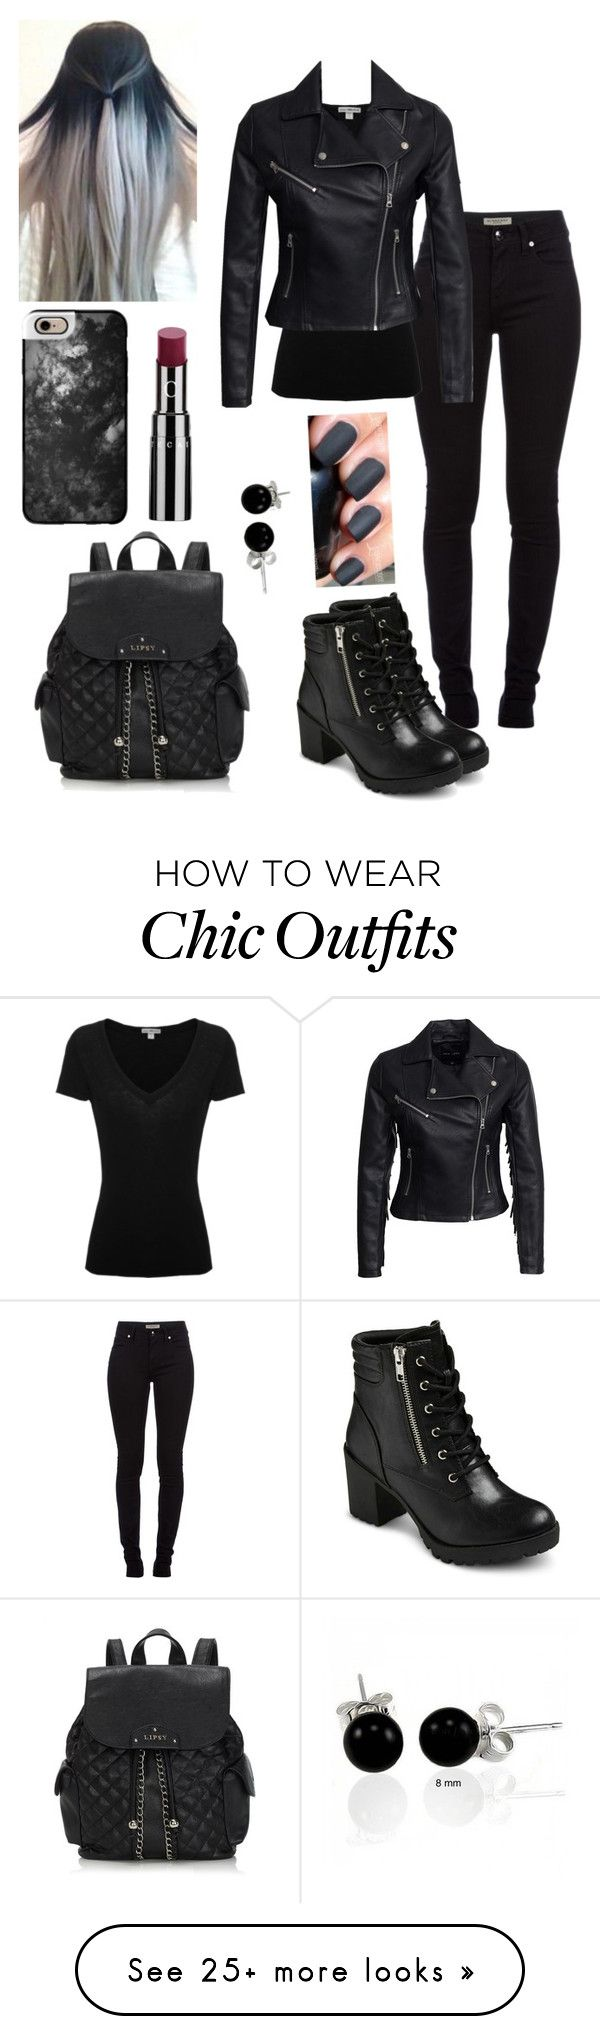 """All black everything"" by genova-was-here on Polyvore featuring Burberry, EASTON, James Perse, New Look, Lipsy, Bling Jewelry, Casetify and Chantecaille"